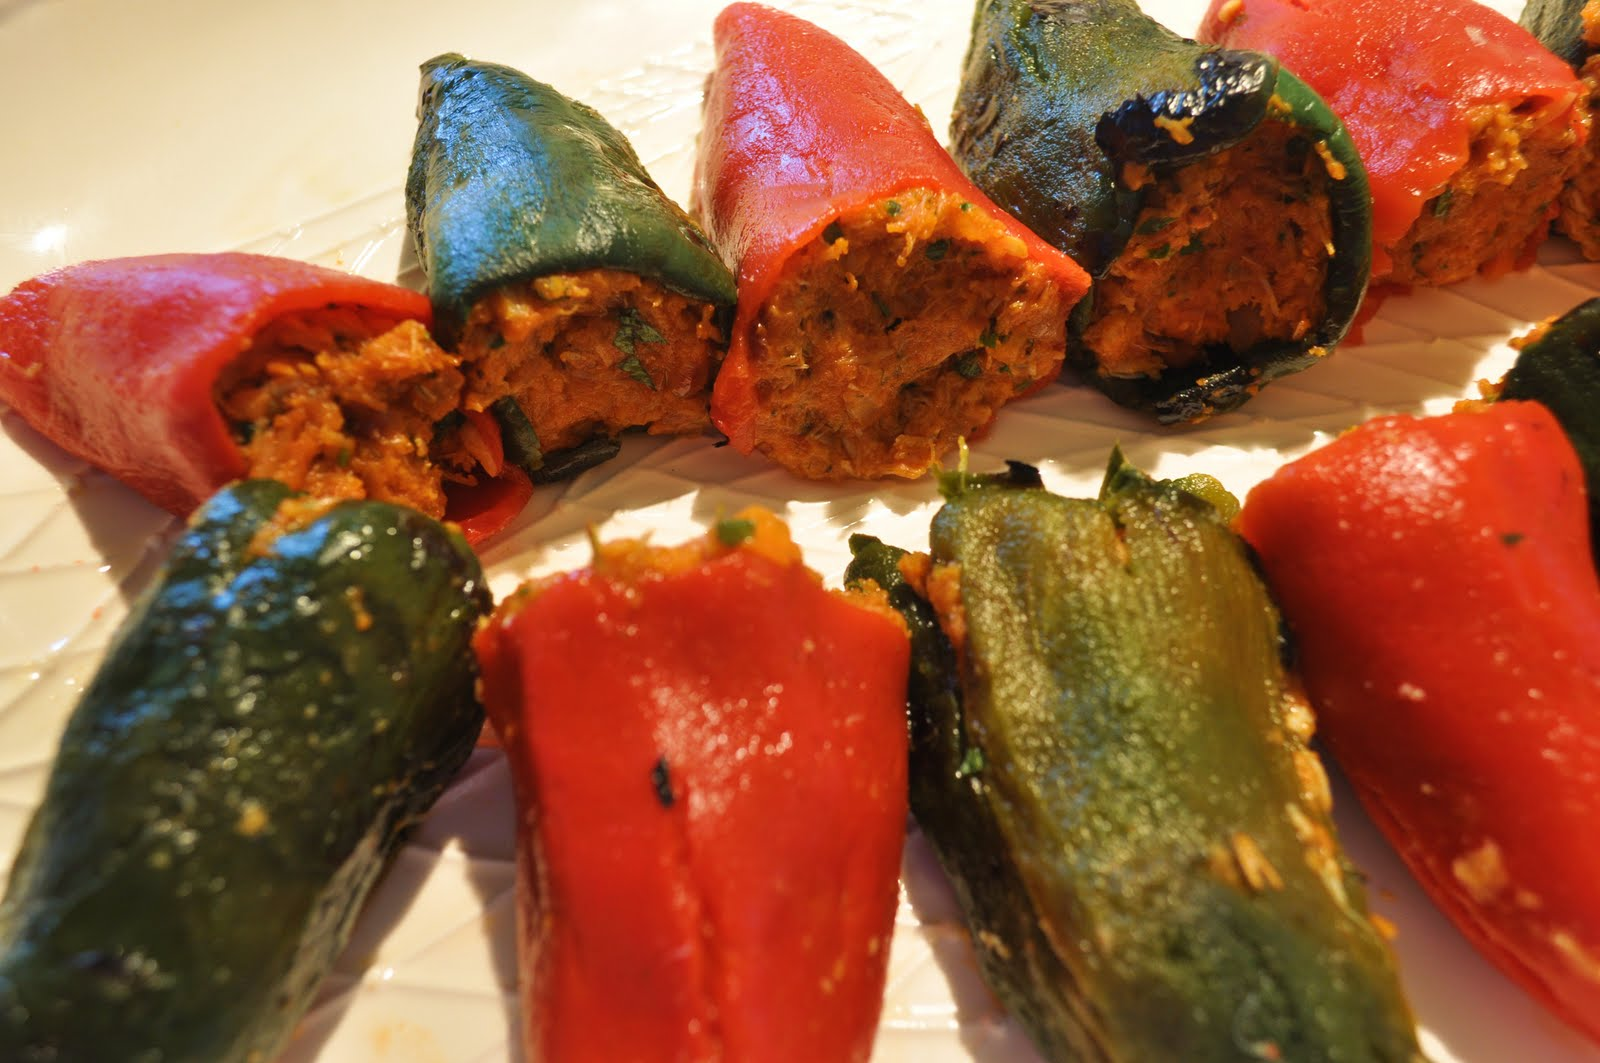 My Hawaiian Home: Basque Peppers stuffed with Crab